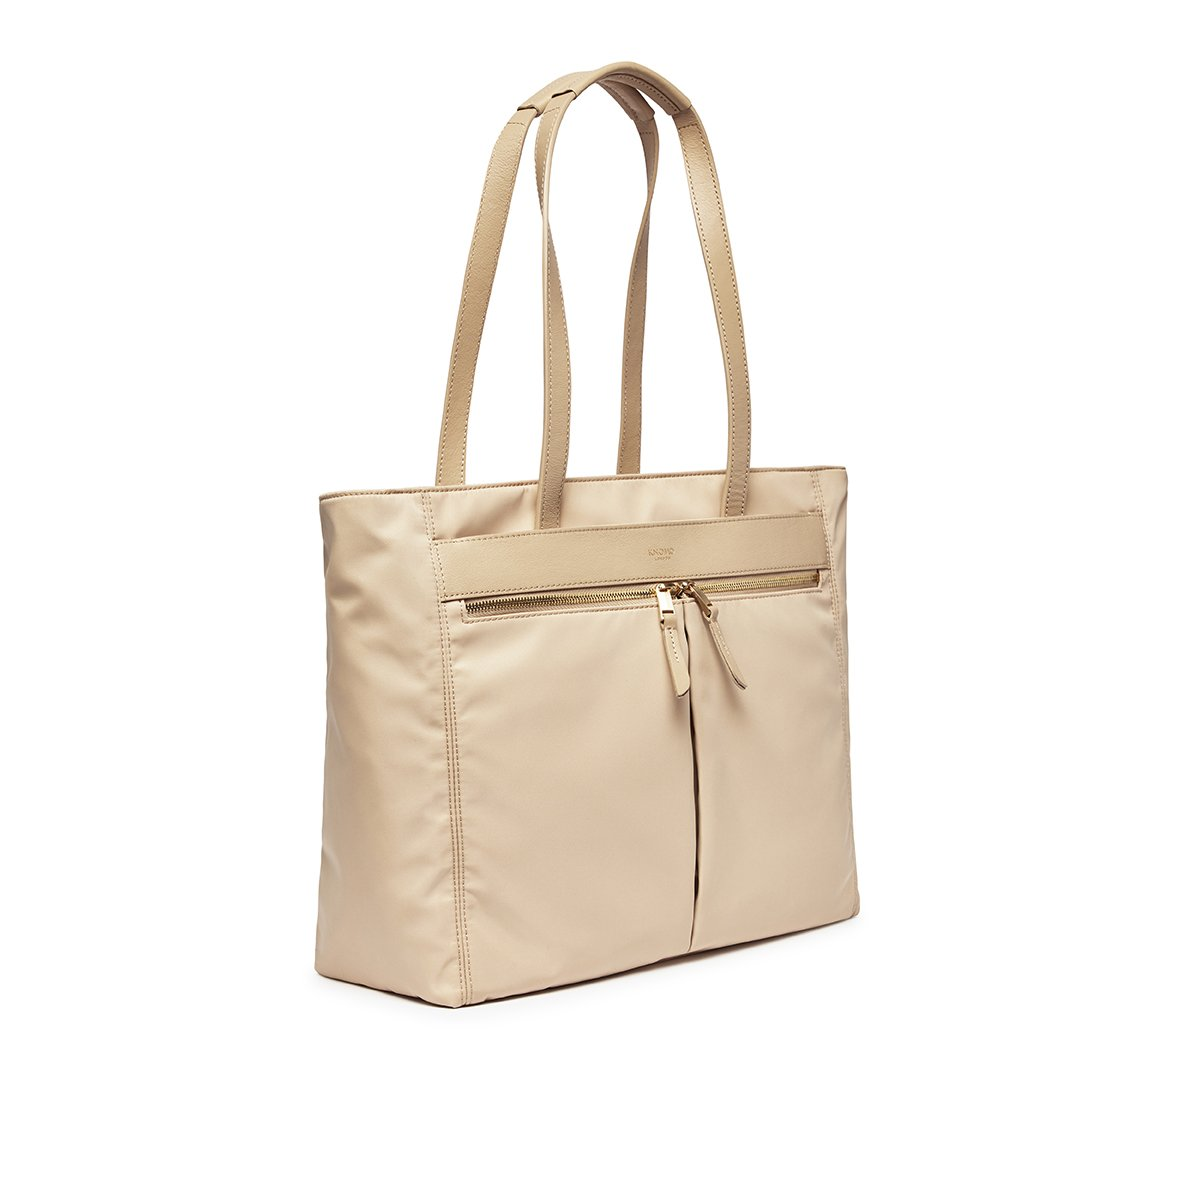 "KNOMO Grosvenor Place Tote Three Quarter View 14"" -  Trench Beige 